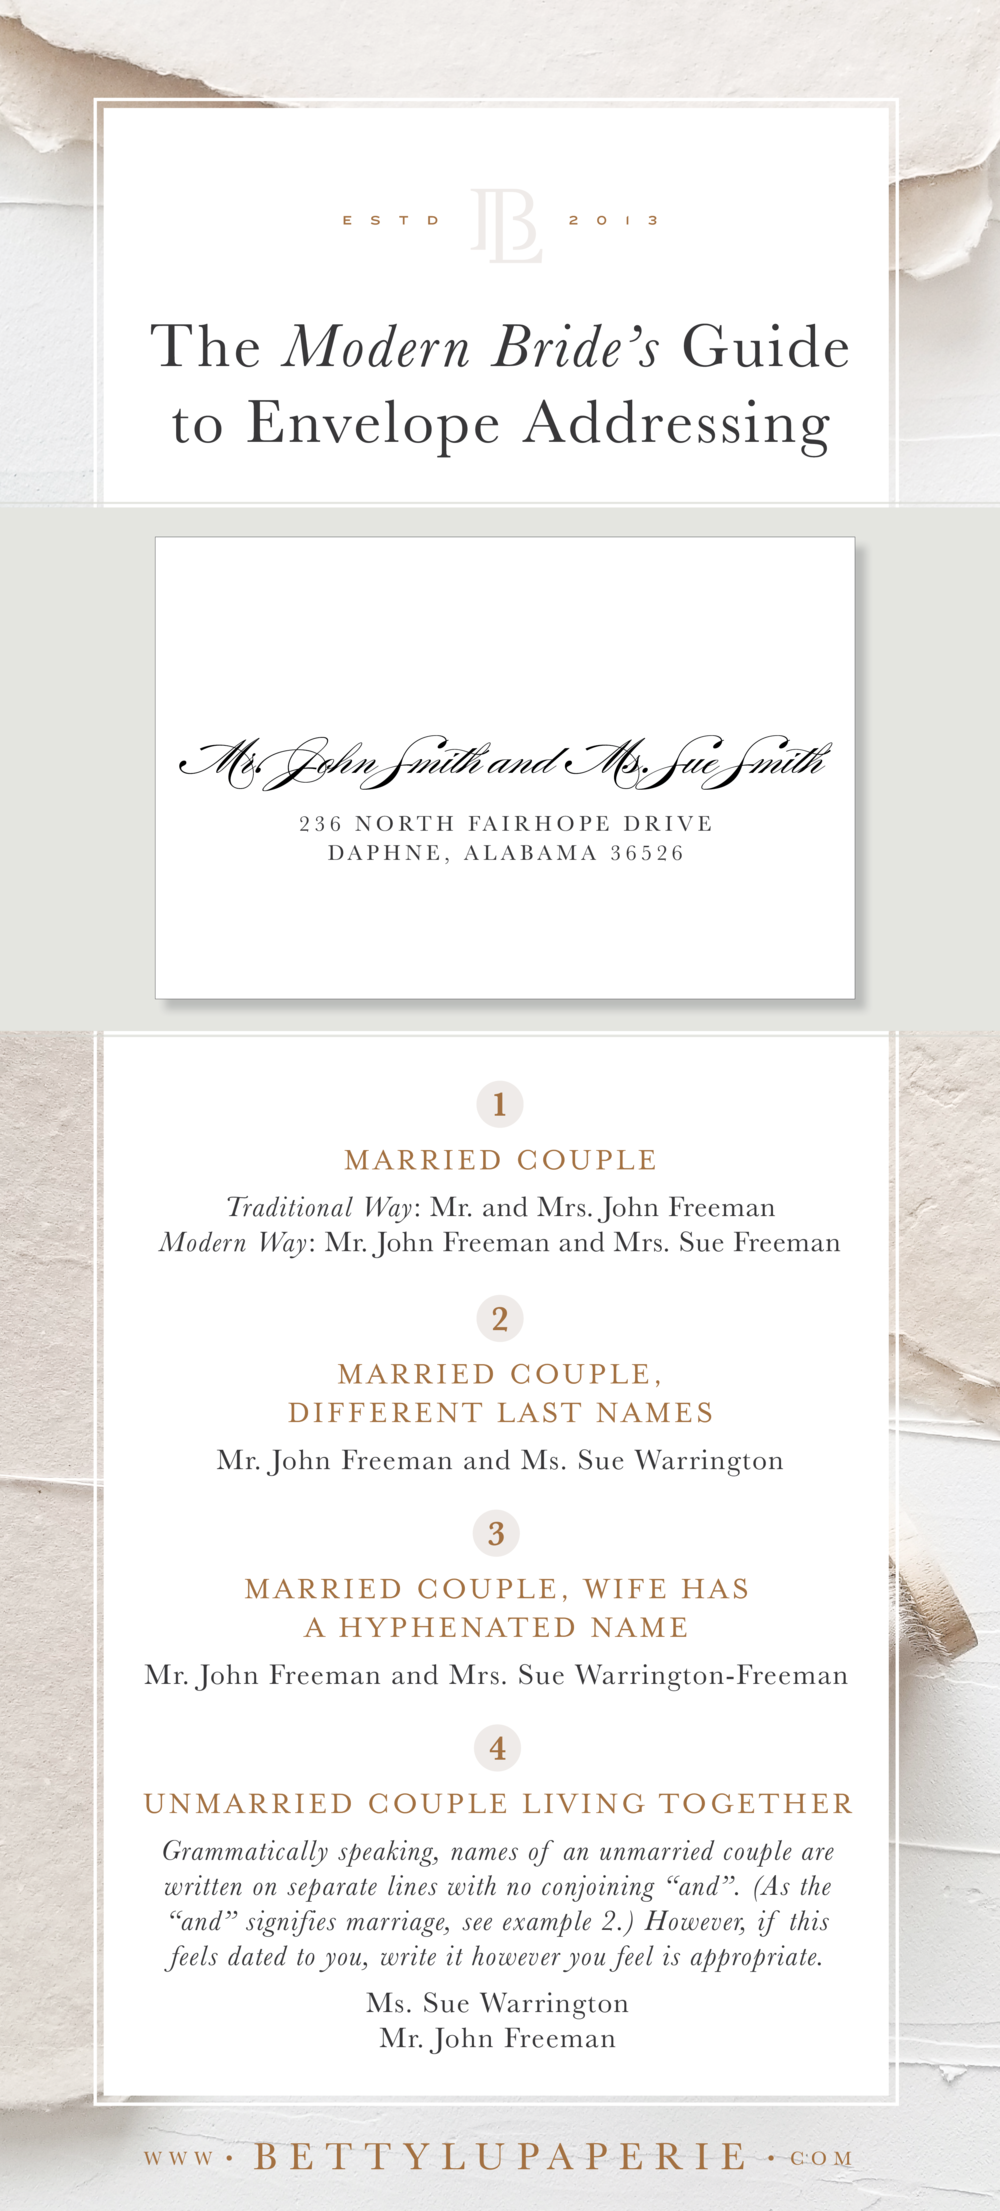 Wedding invitation addressing.png